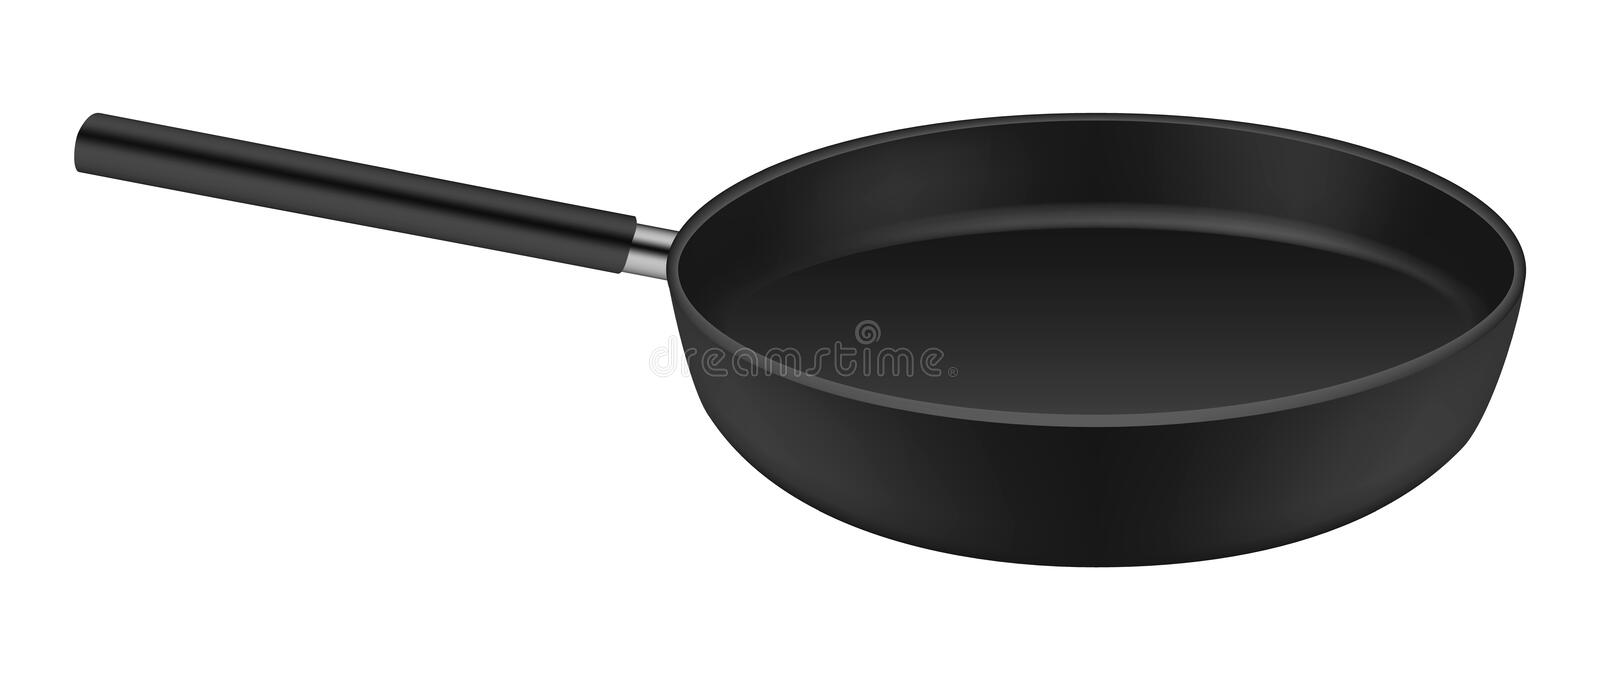 Frying pan icon, realistic style. Frying pan icon. Realistic illustration of frying pan vector icon for web design isolated on white background stock illustration